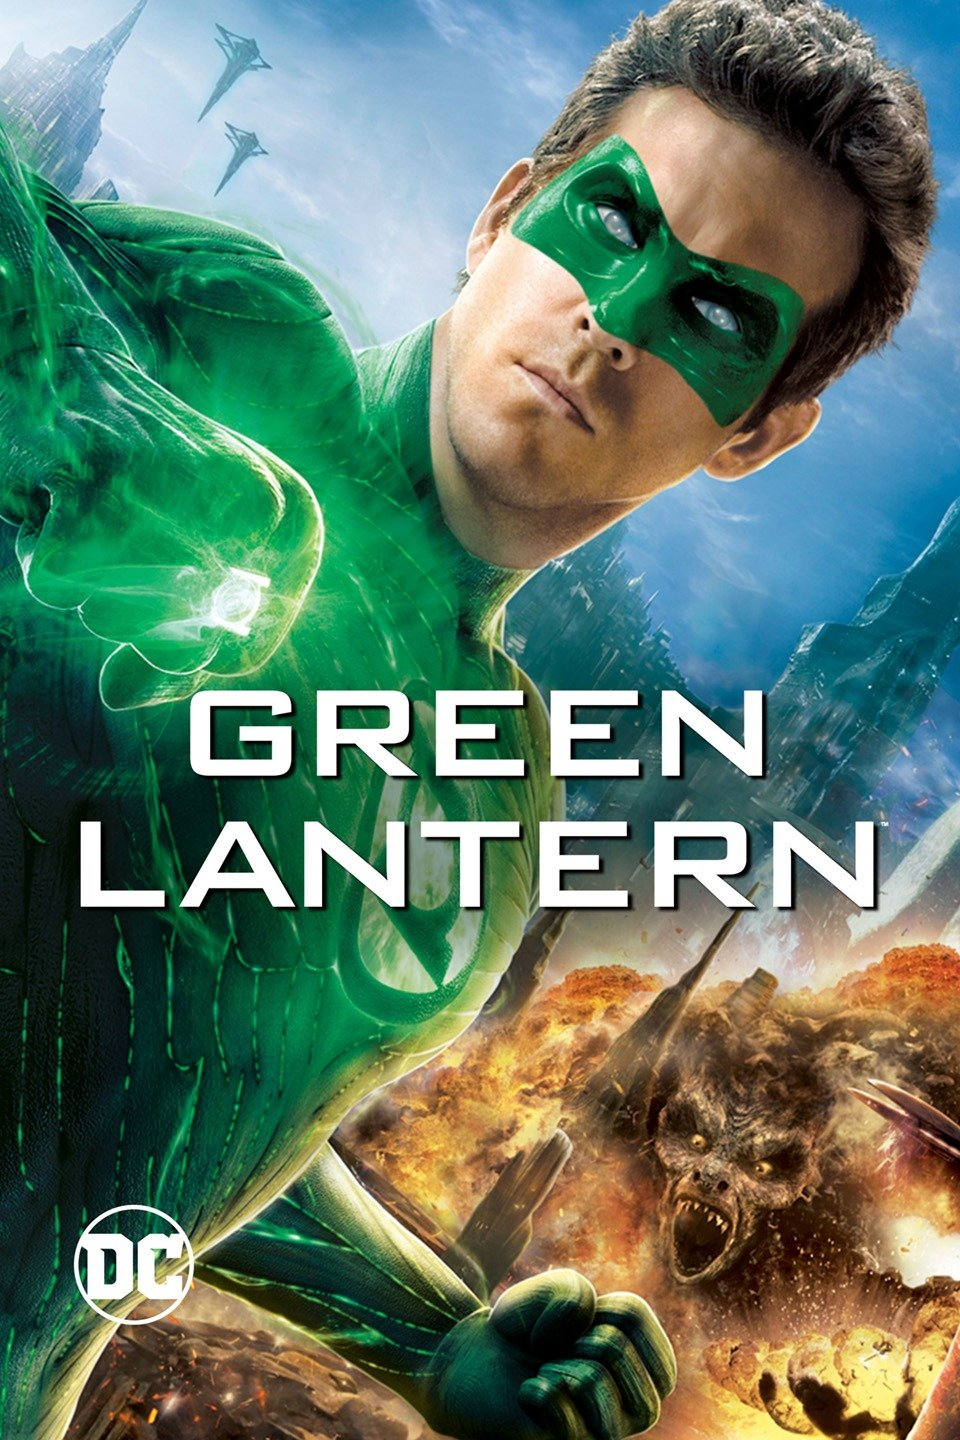 Green Lantern (2011) Dual Audio Hindi 400MB BluRay 480p x264 ESubs